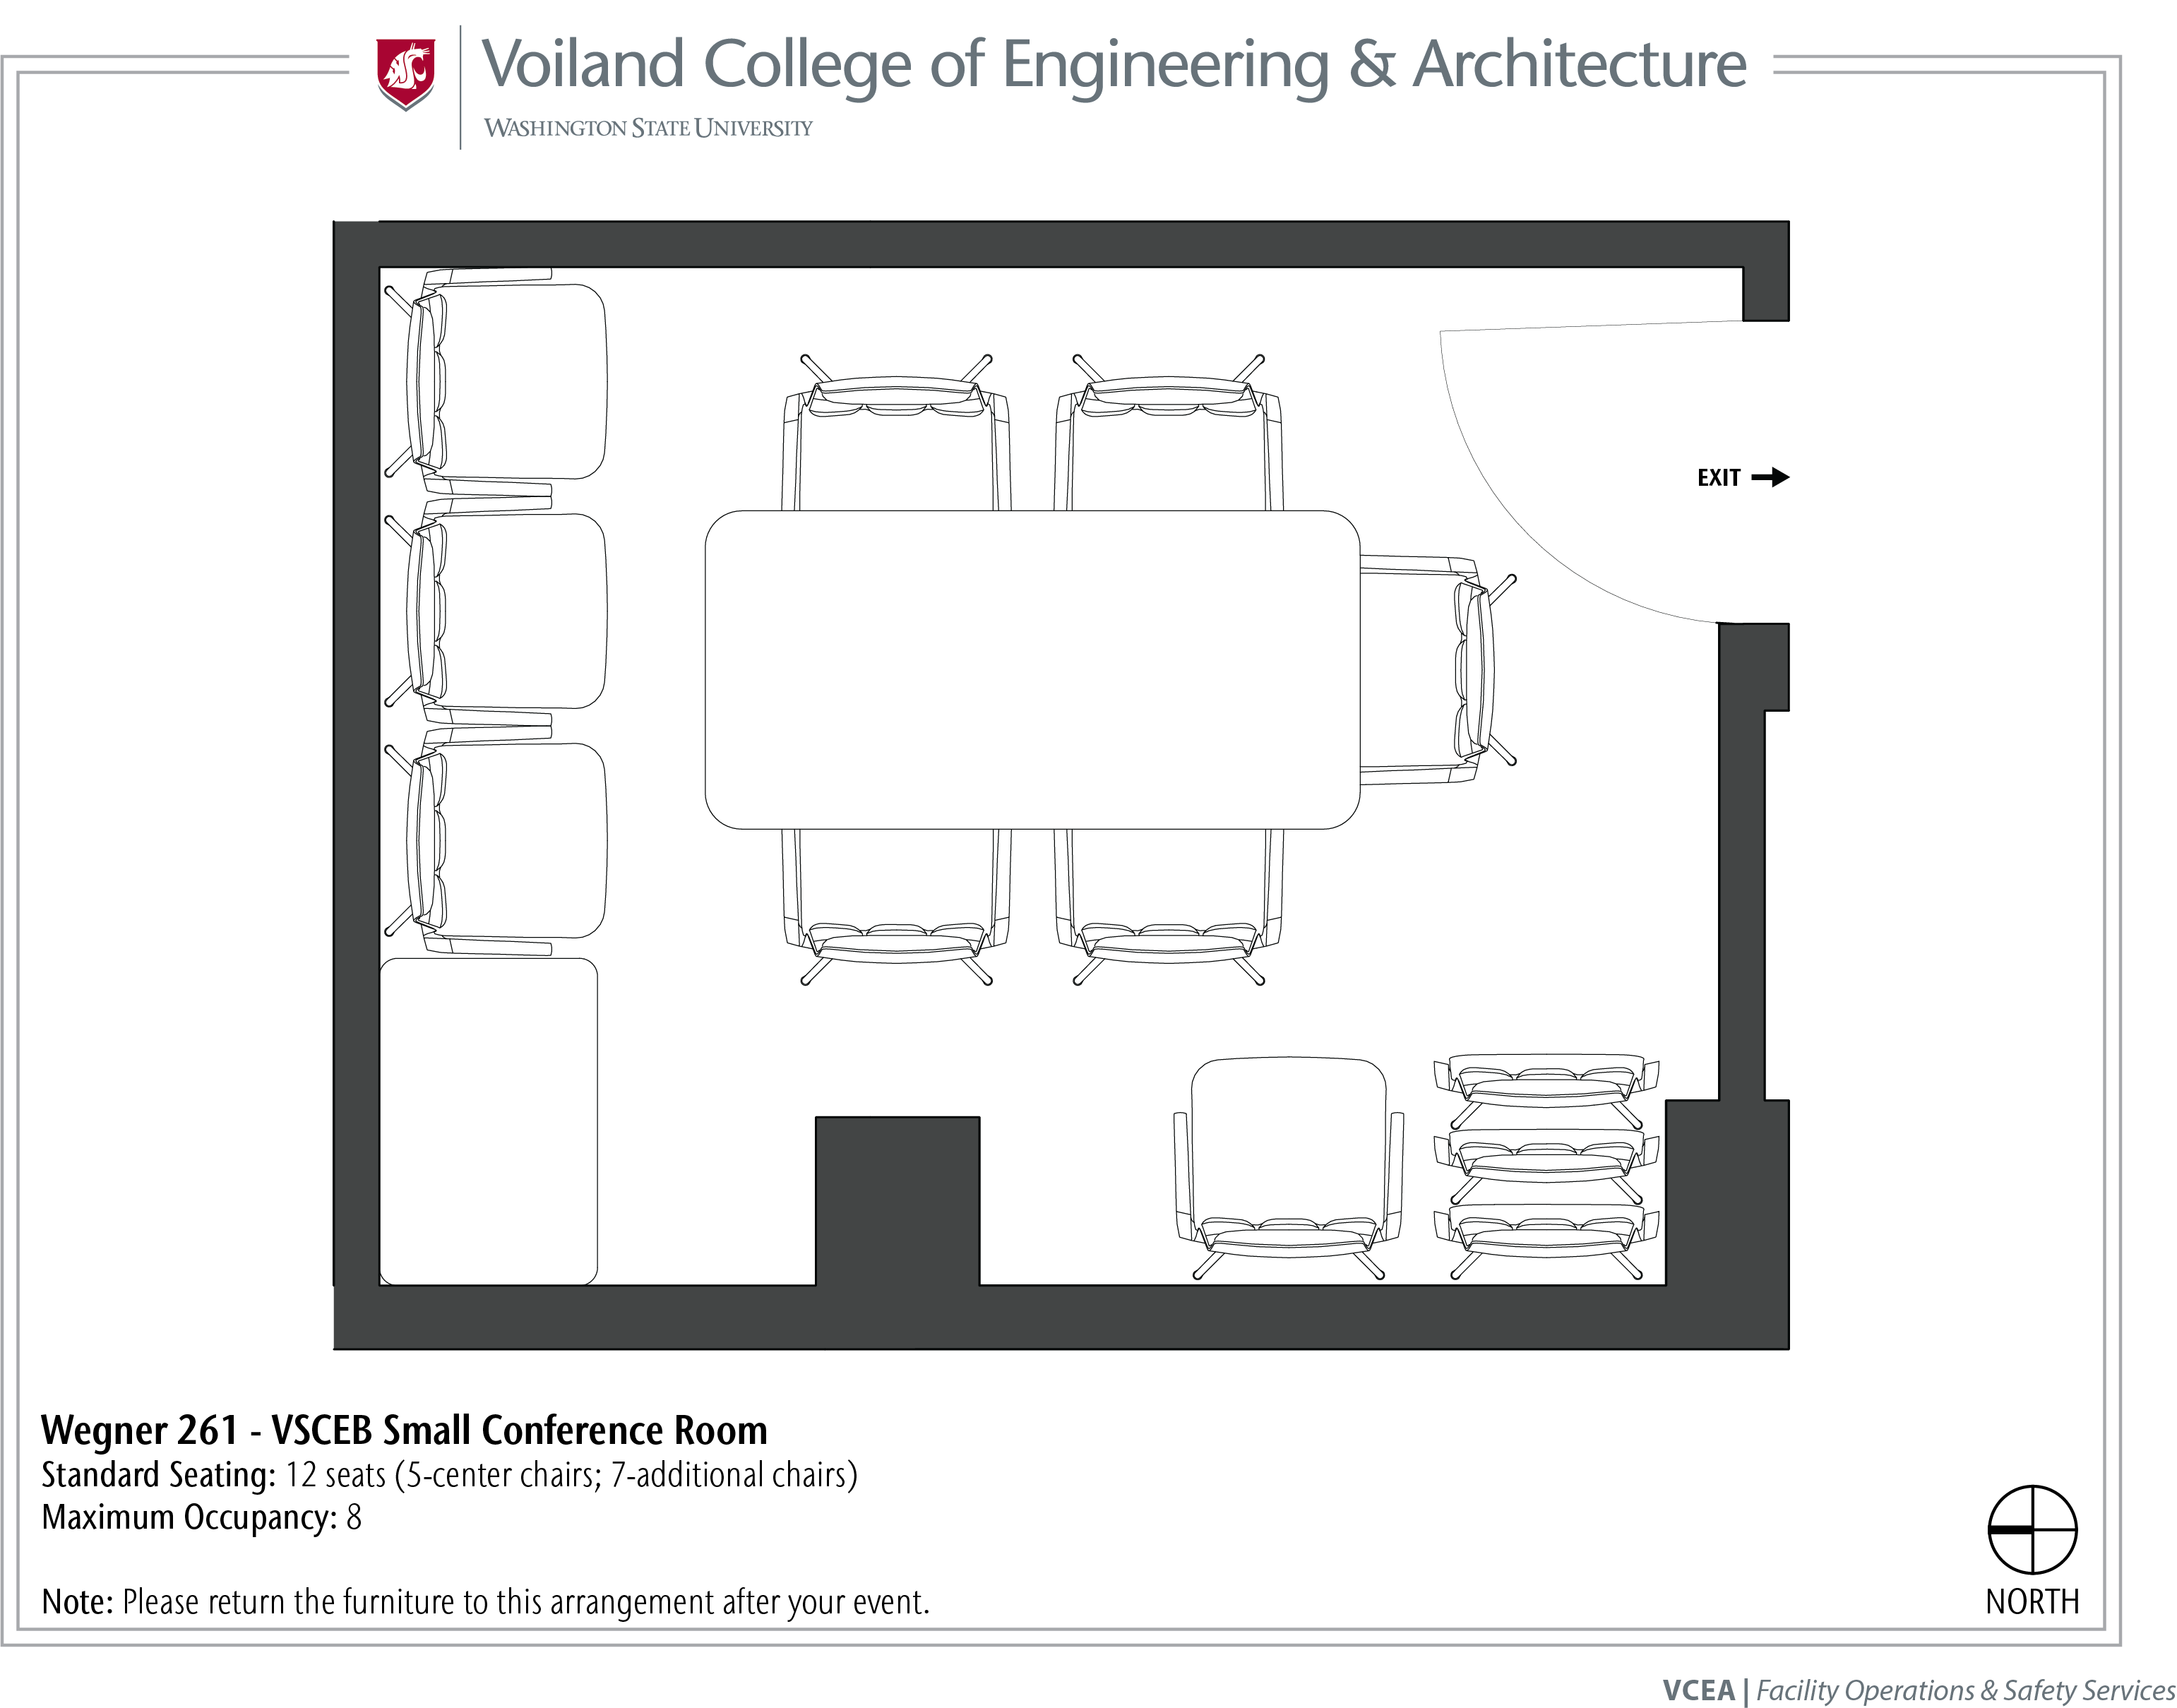 Layout of Wegner 261, VSCEB Small Conference Room, at WSU Pullman